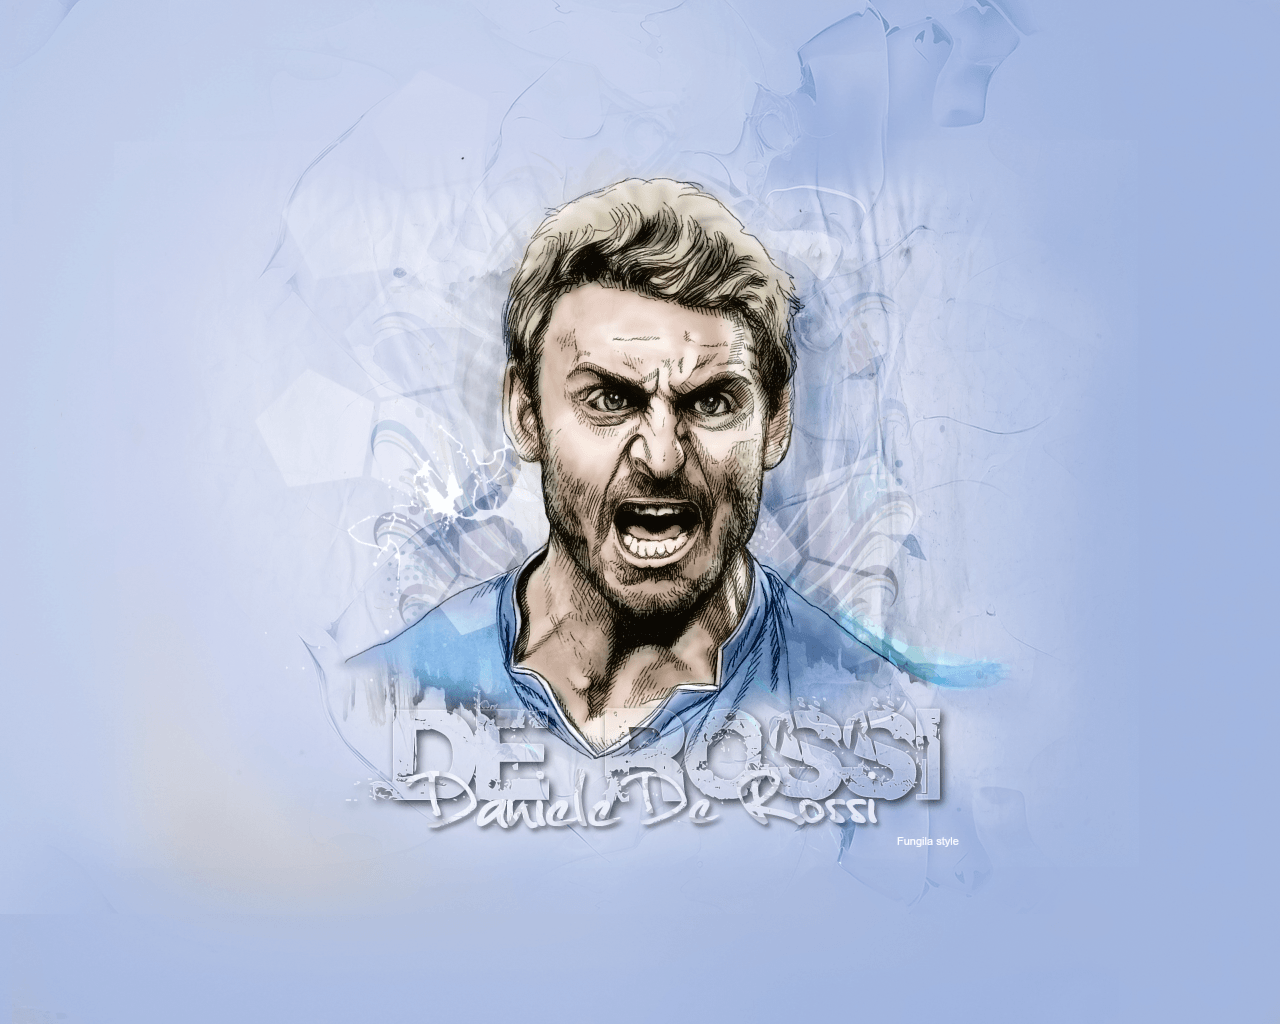 Painting De Rossi Pictures to Pin